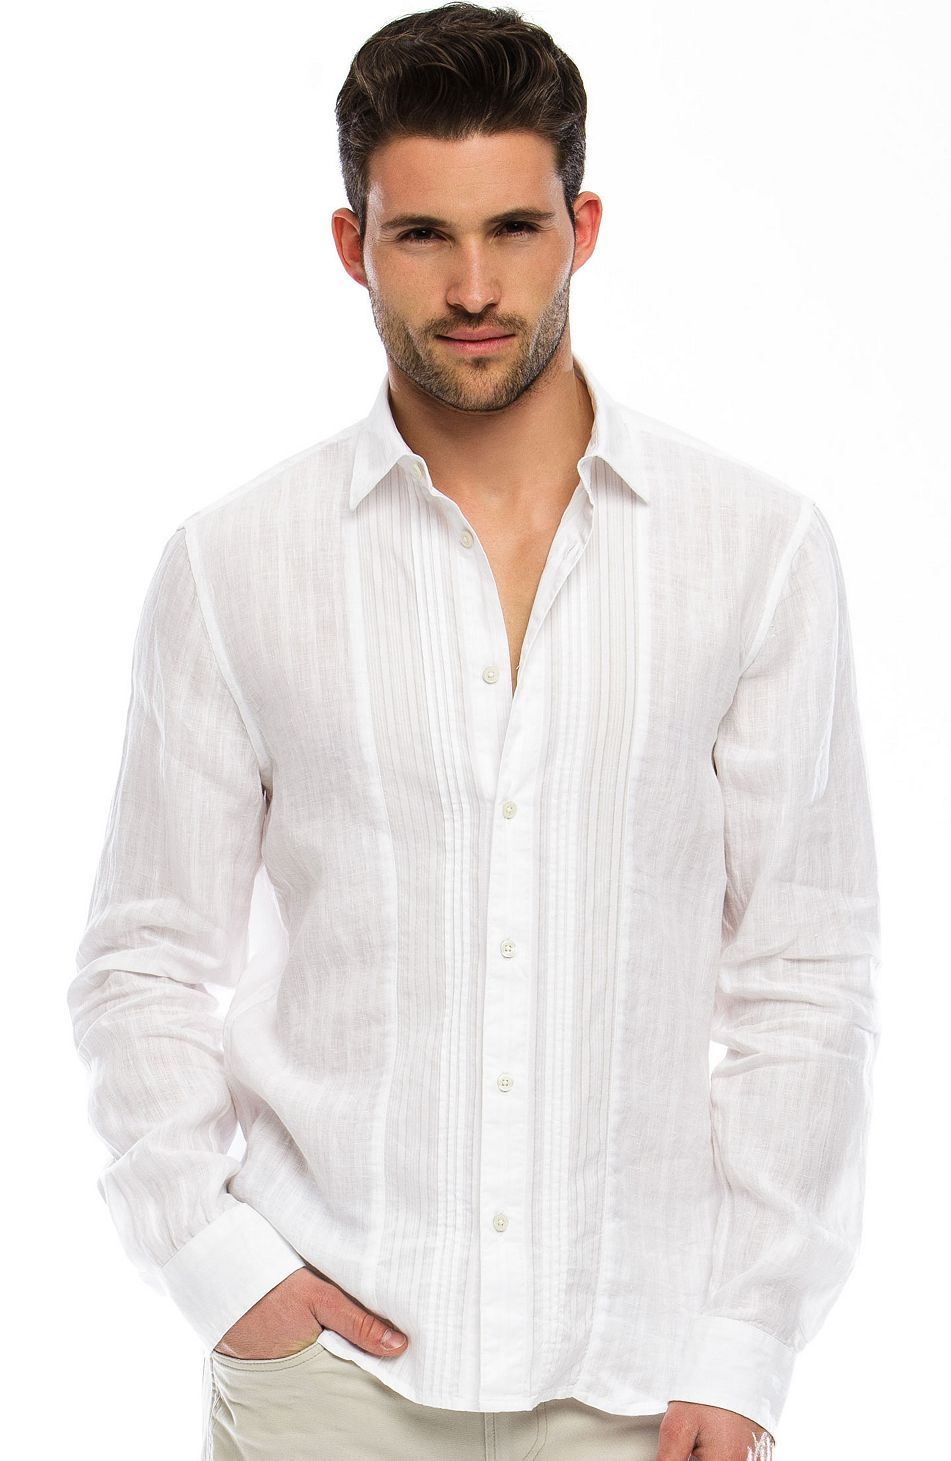 linen tuxedo shirt dress shirts shirts mens armani exchange might as well